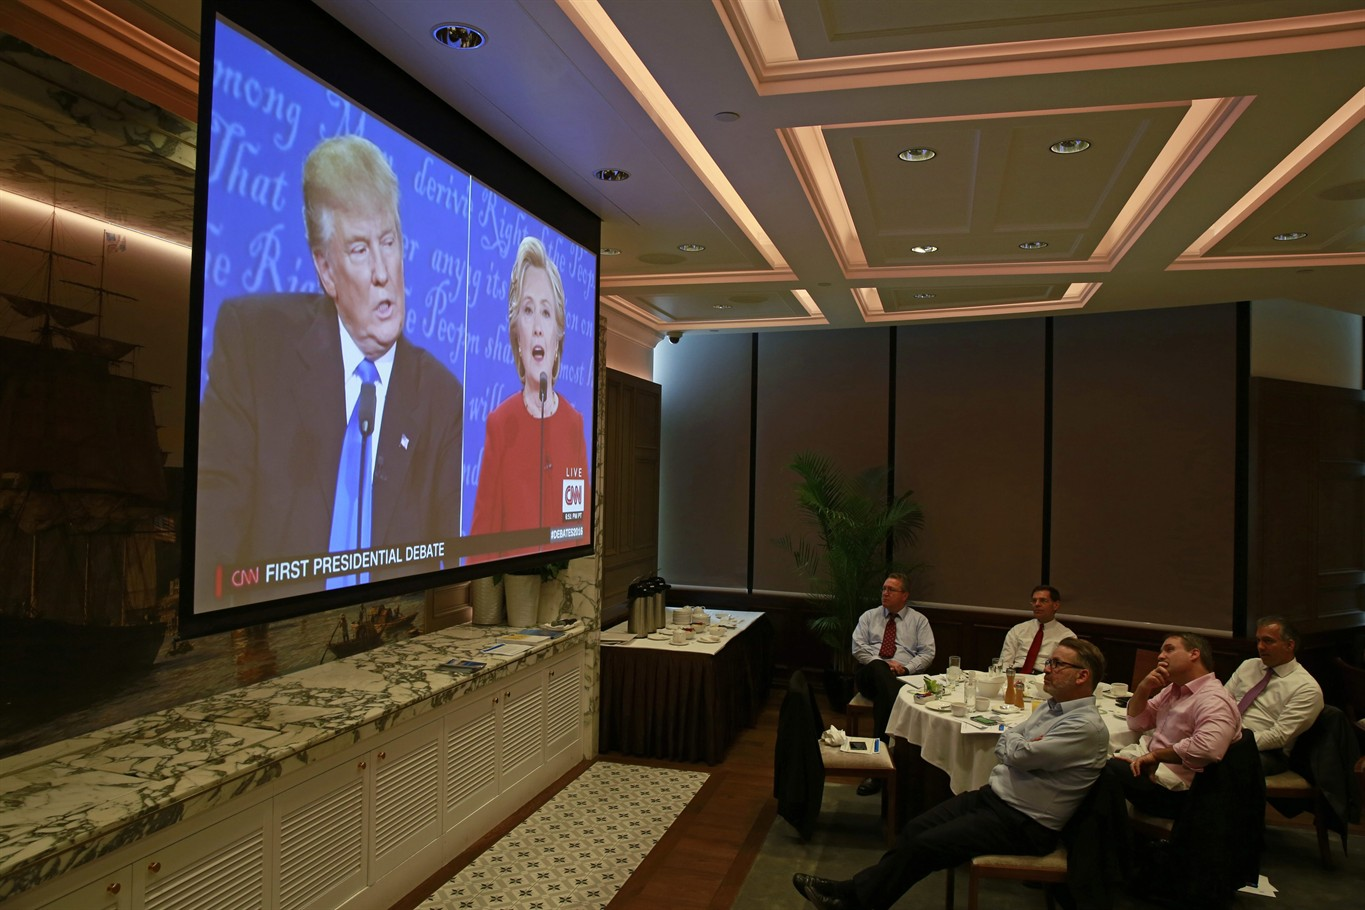 People watch live broadcasting of the U.S. presidential debate between Democratic presidential nominee Hillary Clinton and Republican presidential nominee Donald Trump, at the American Club Hong Kong, Tuesday, Sept. 27, 2016   AP Photo/Kin Cheung, St. George News